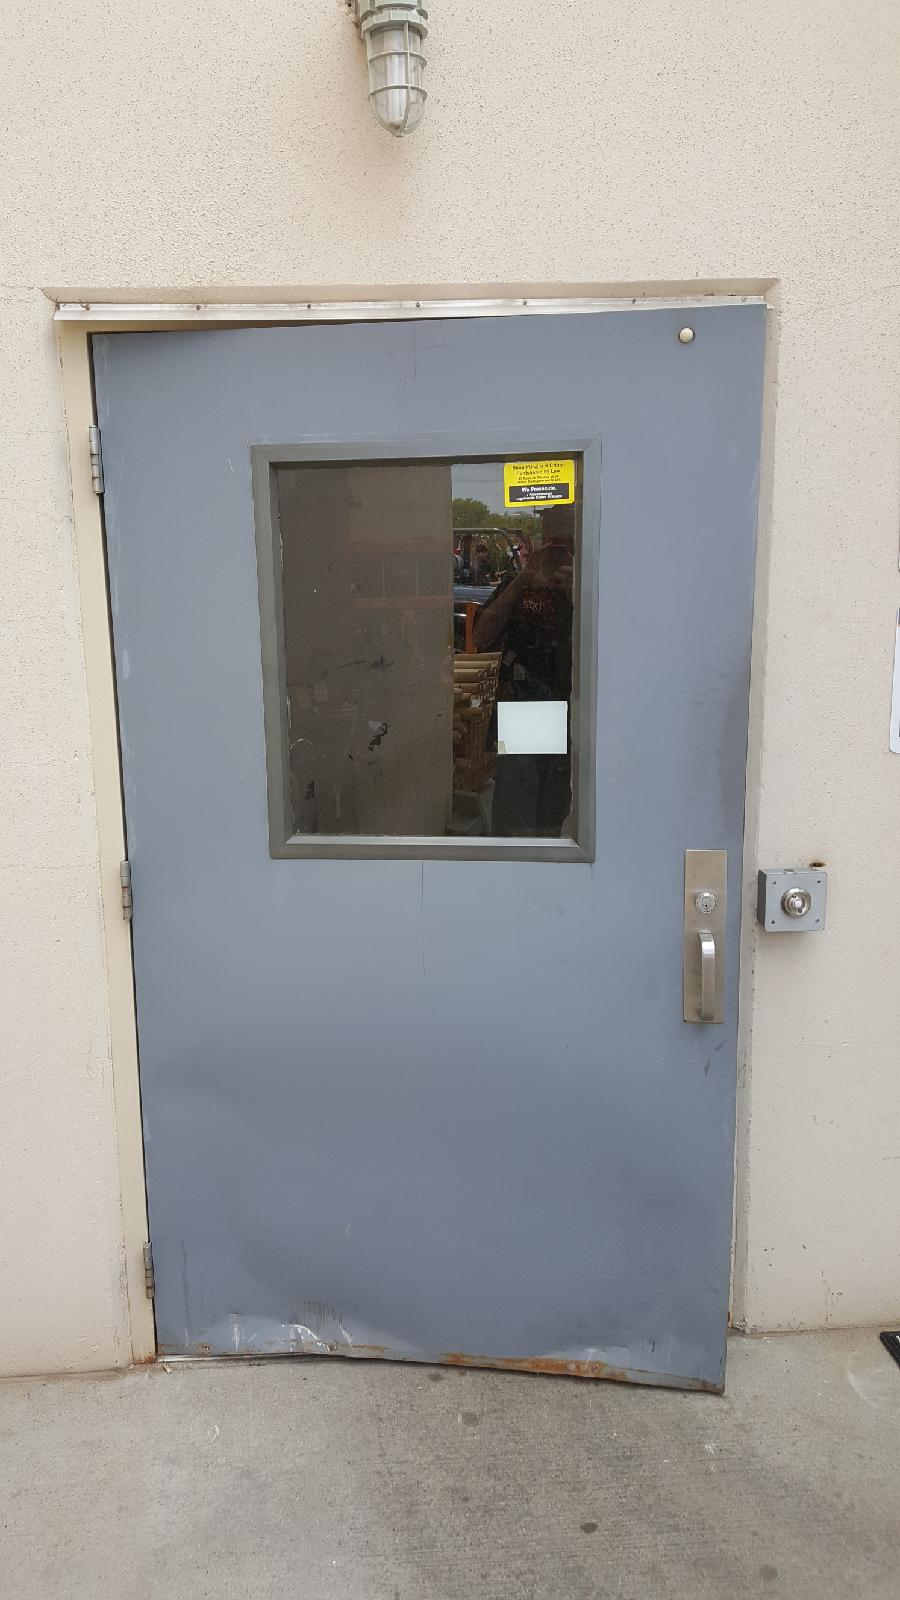 Le Meilleur Commercial Door Installation At Home Depot In Amarillo Ce Mois Ci